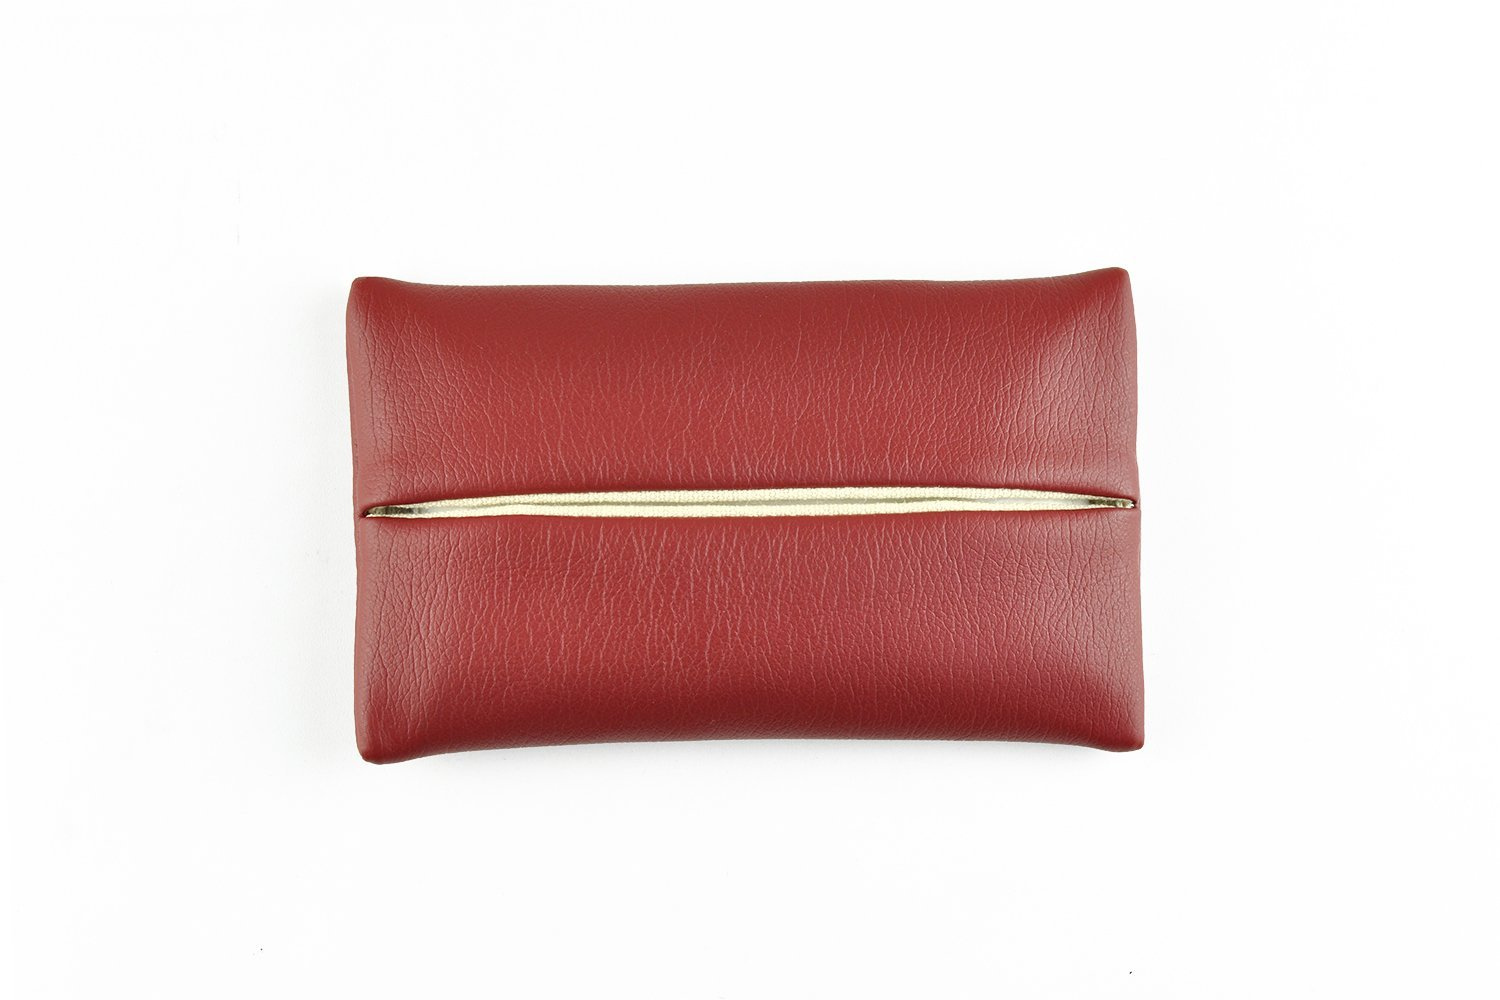 「Thing.Is」PU Leather Pocket Tissue Holder, Travel Tissue Cover, Travel Tissue Holder, Portable Tissue Case, Tissue Pouch, Wine Red